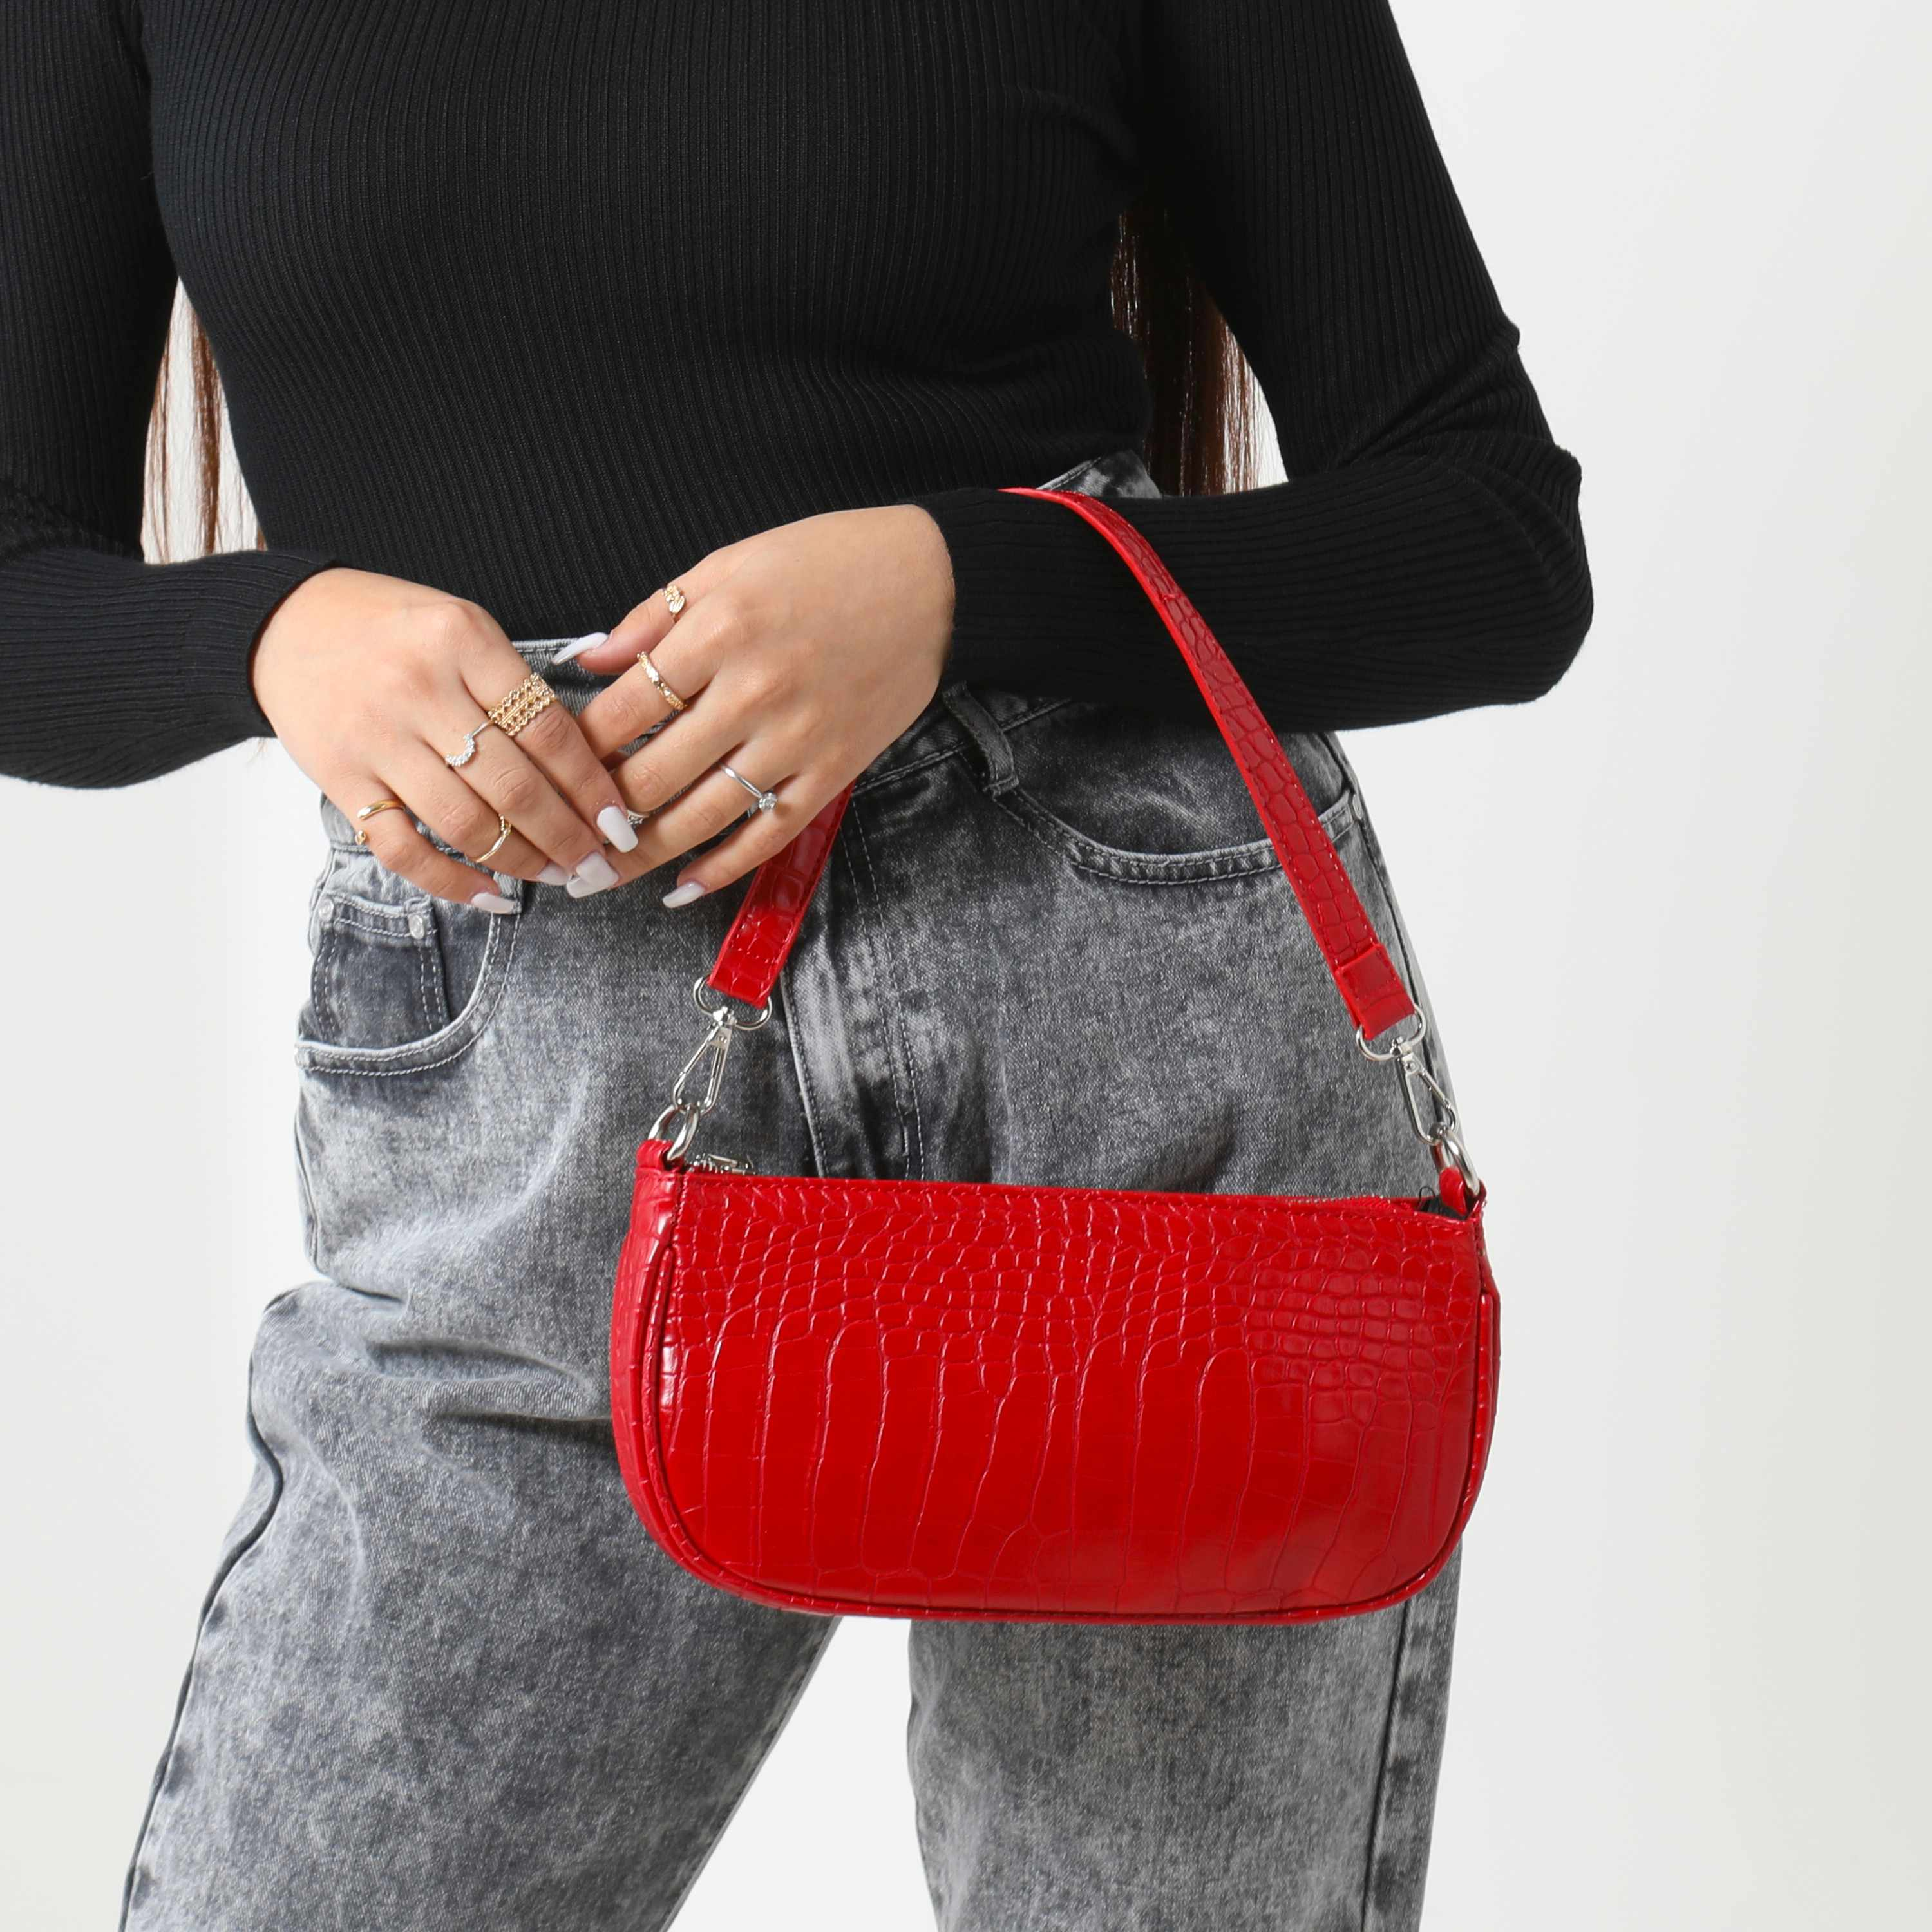 Baguette Bag In Red Croc Print Faux Leather